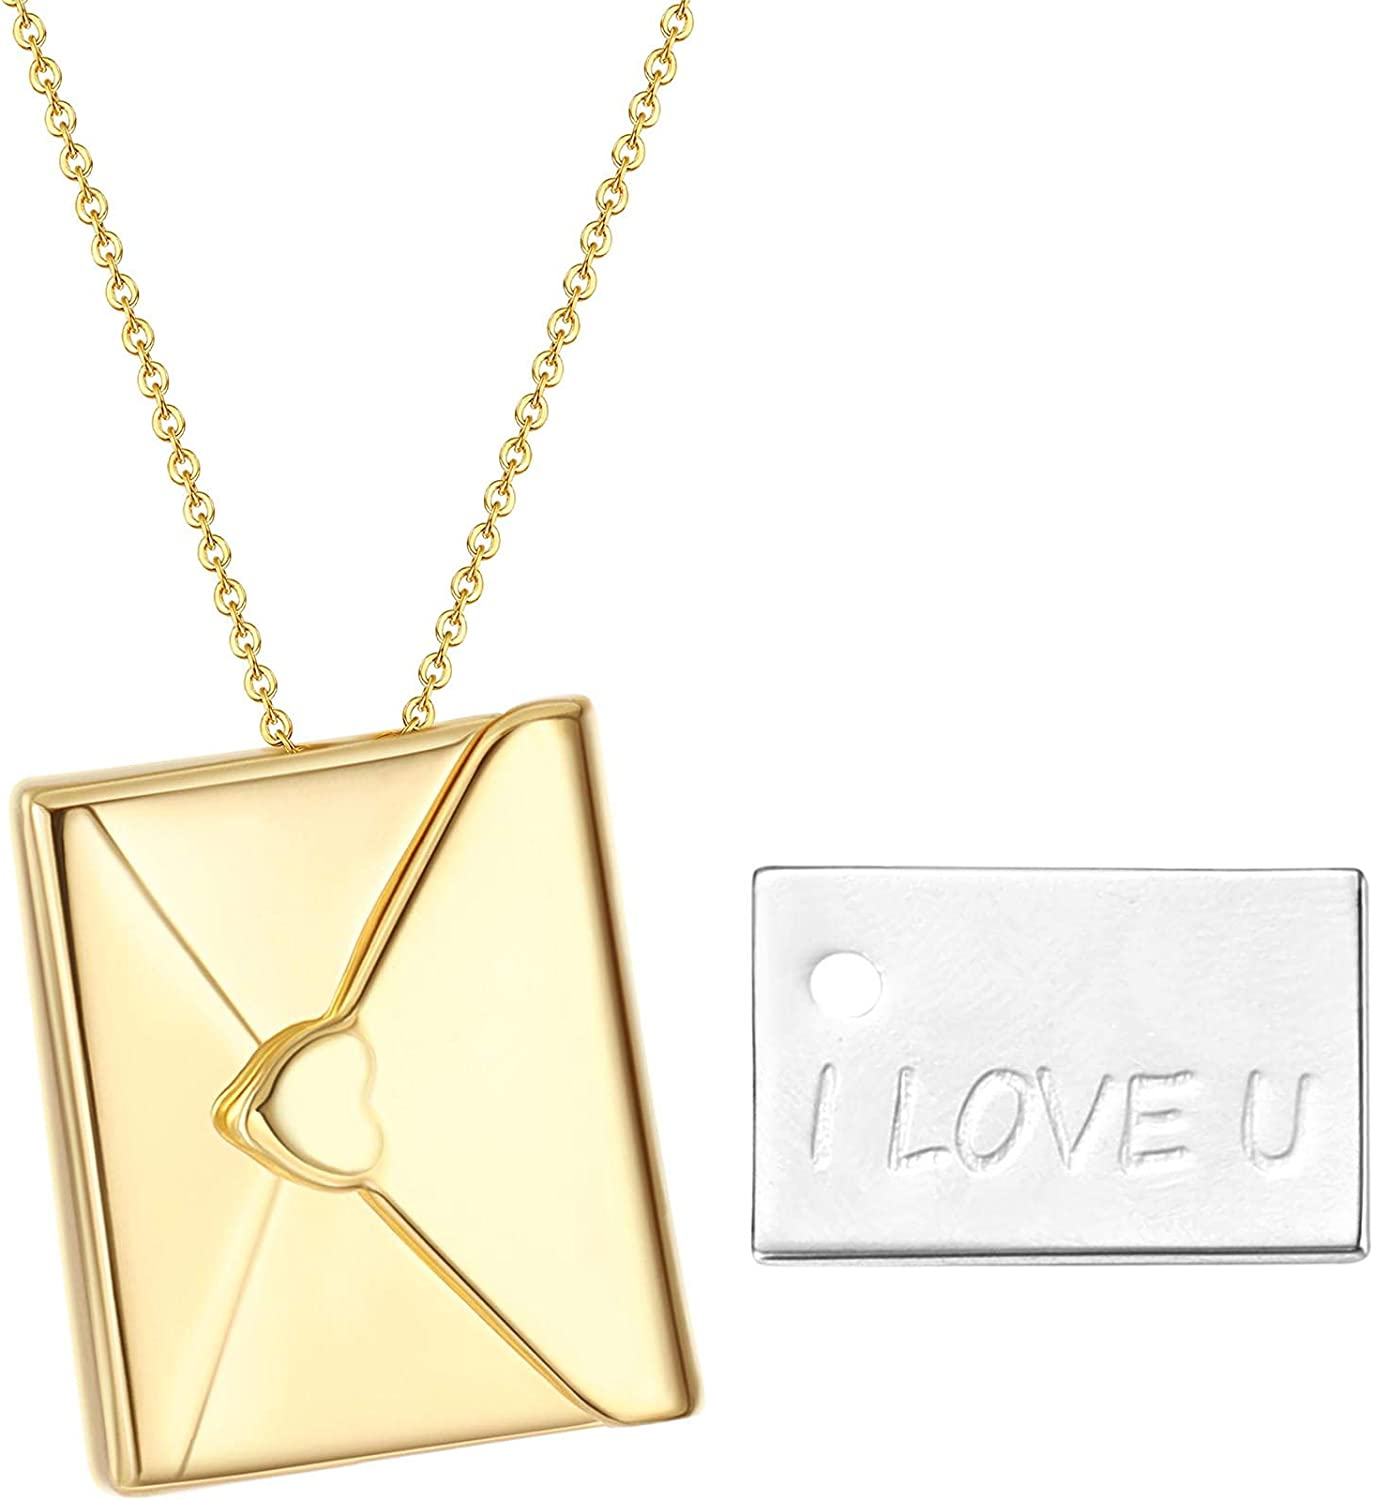 Jstyle I Love You with Envelope Locket Necklace,Gold Necklace for Women Pendant Necklace Jewelry Gift for Her on Mother's Day